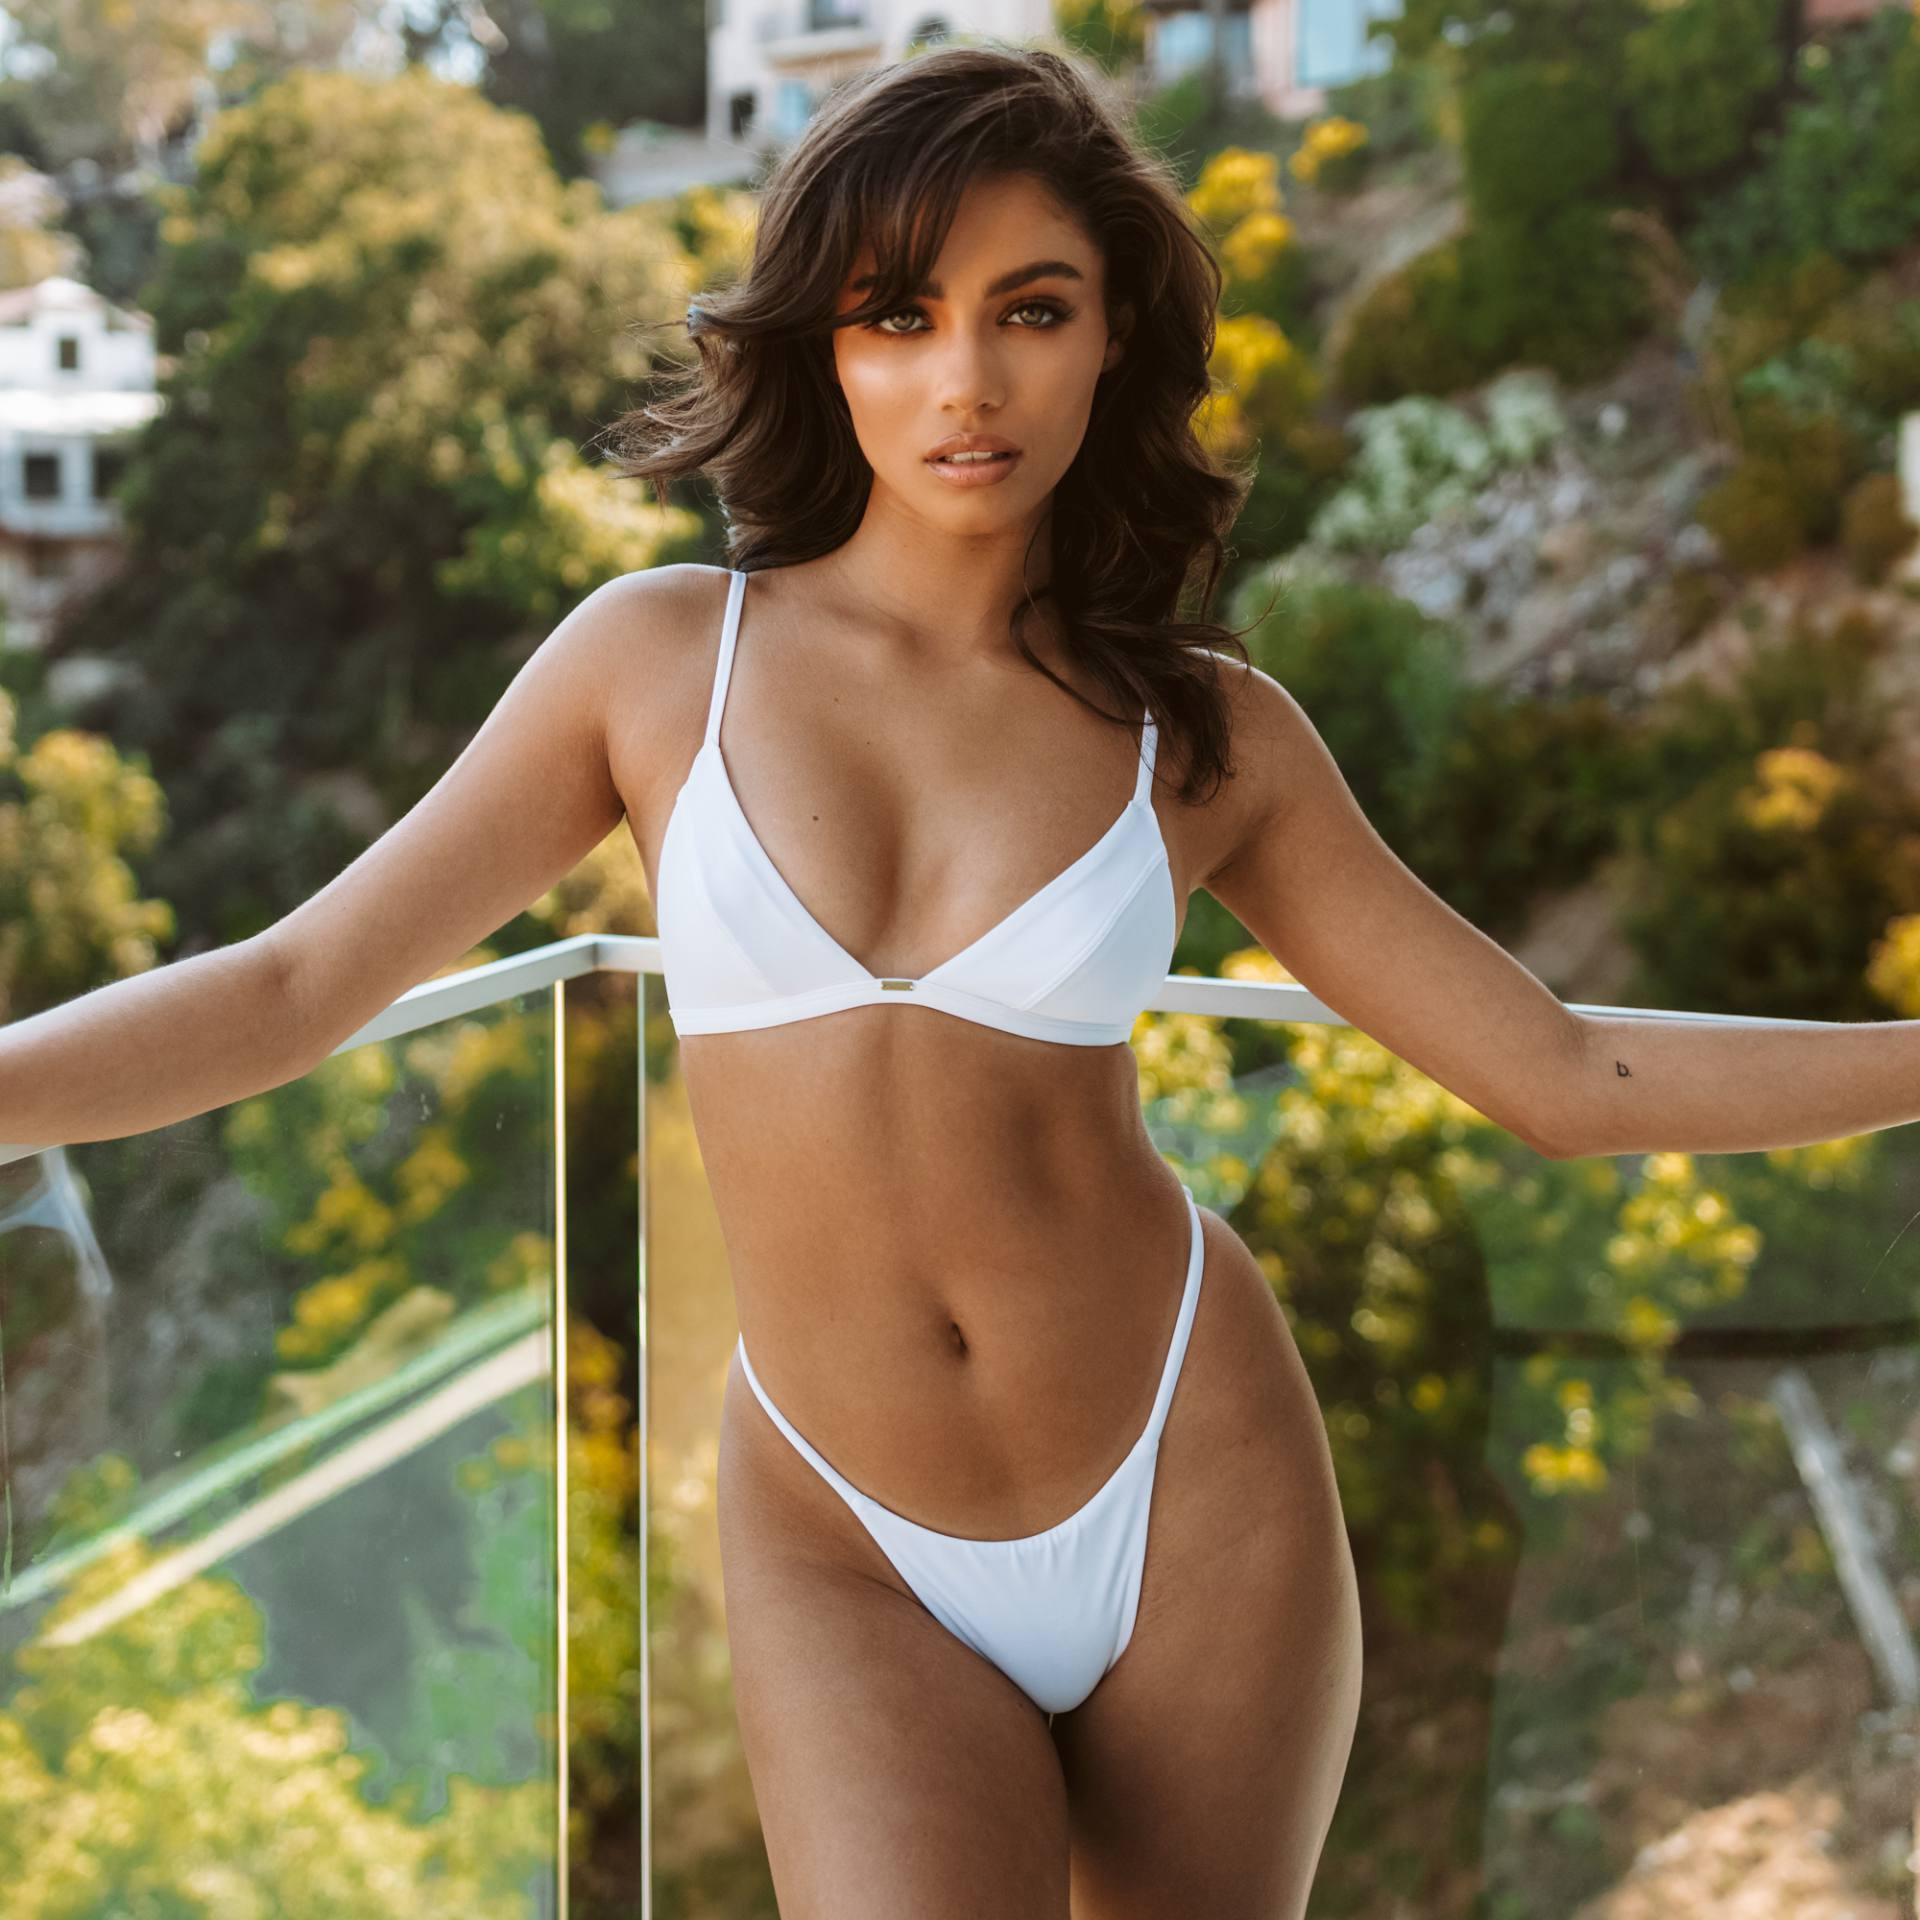 Audreyana Michelle – Hot Ass In Sexy Photoshoot For X Gooseberry Intimates Swimwear 2020 0029